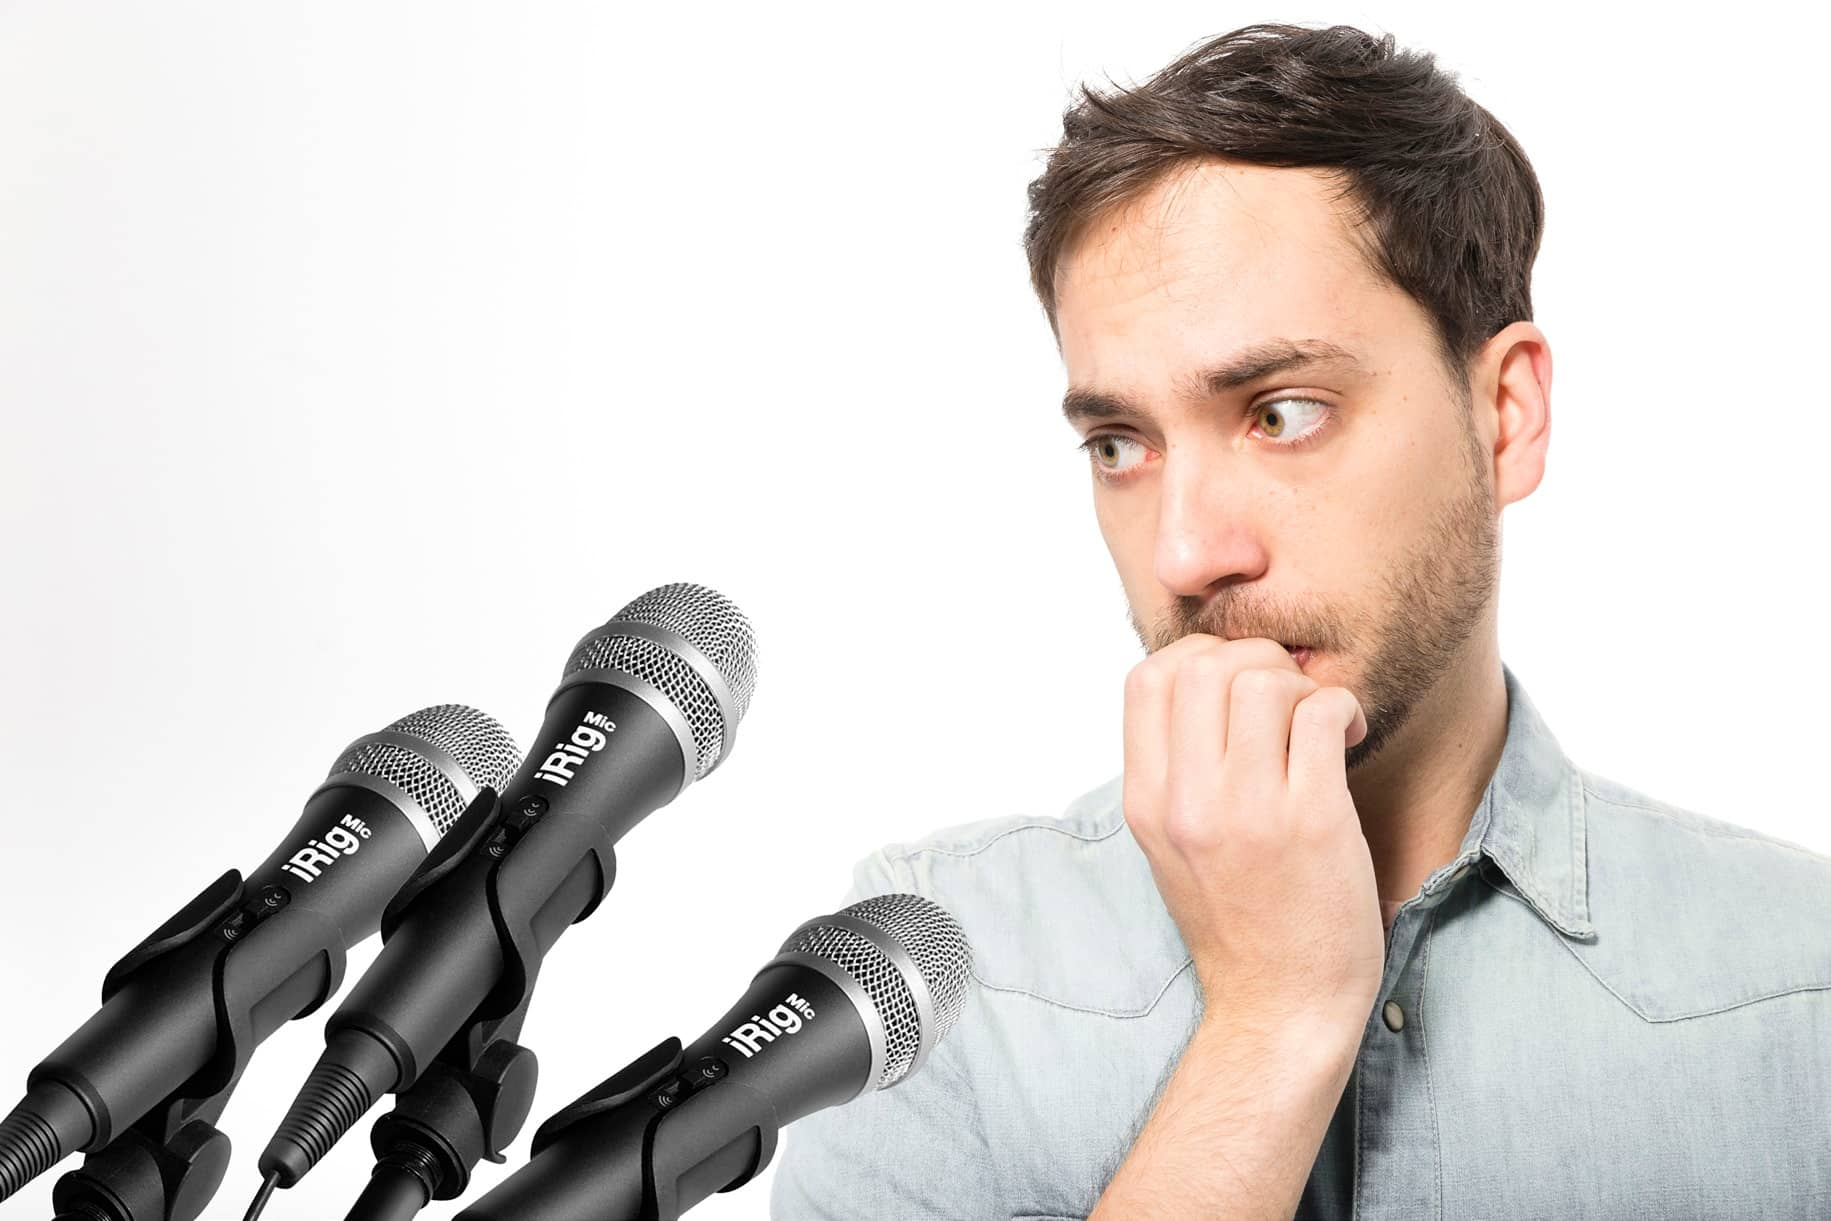 Tackling The Dreaded Phobia Of Public Speaking